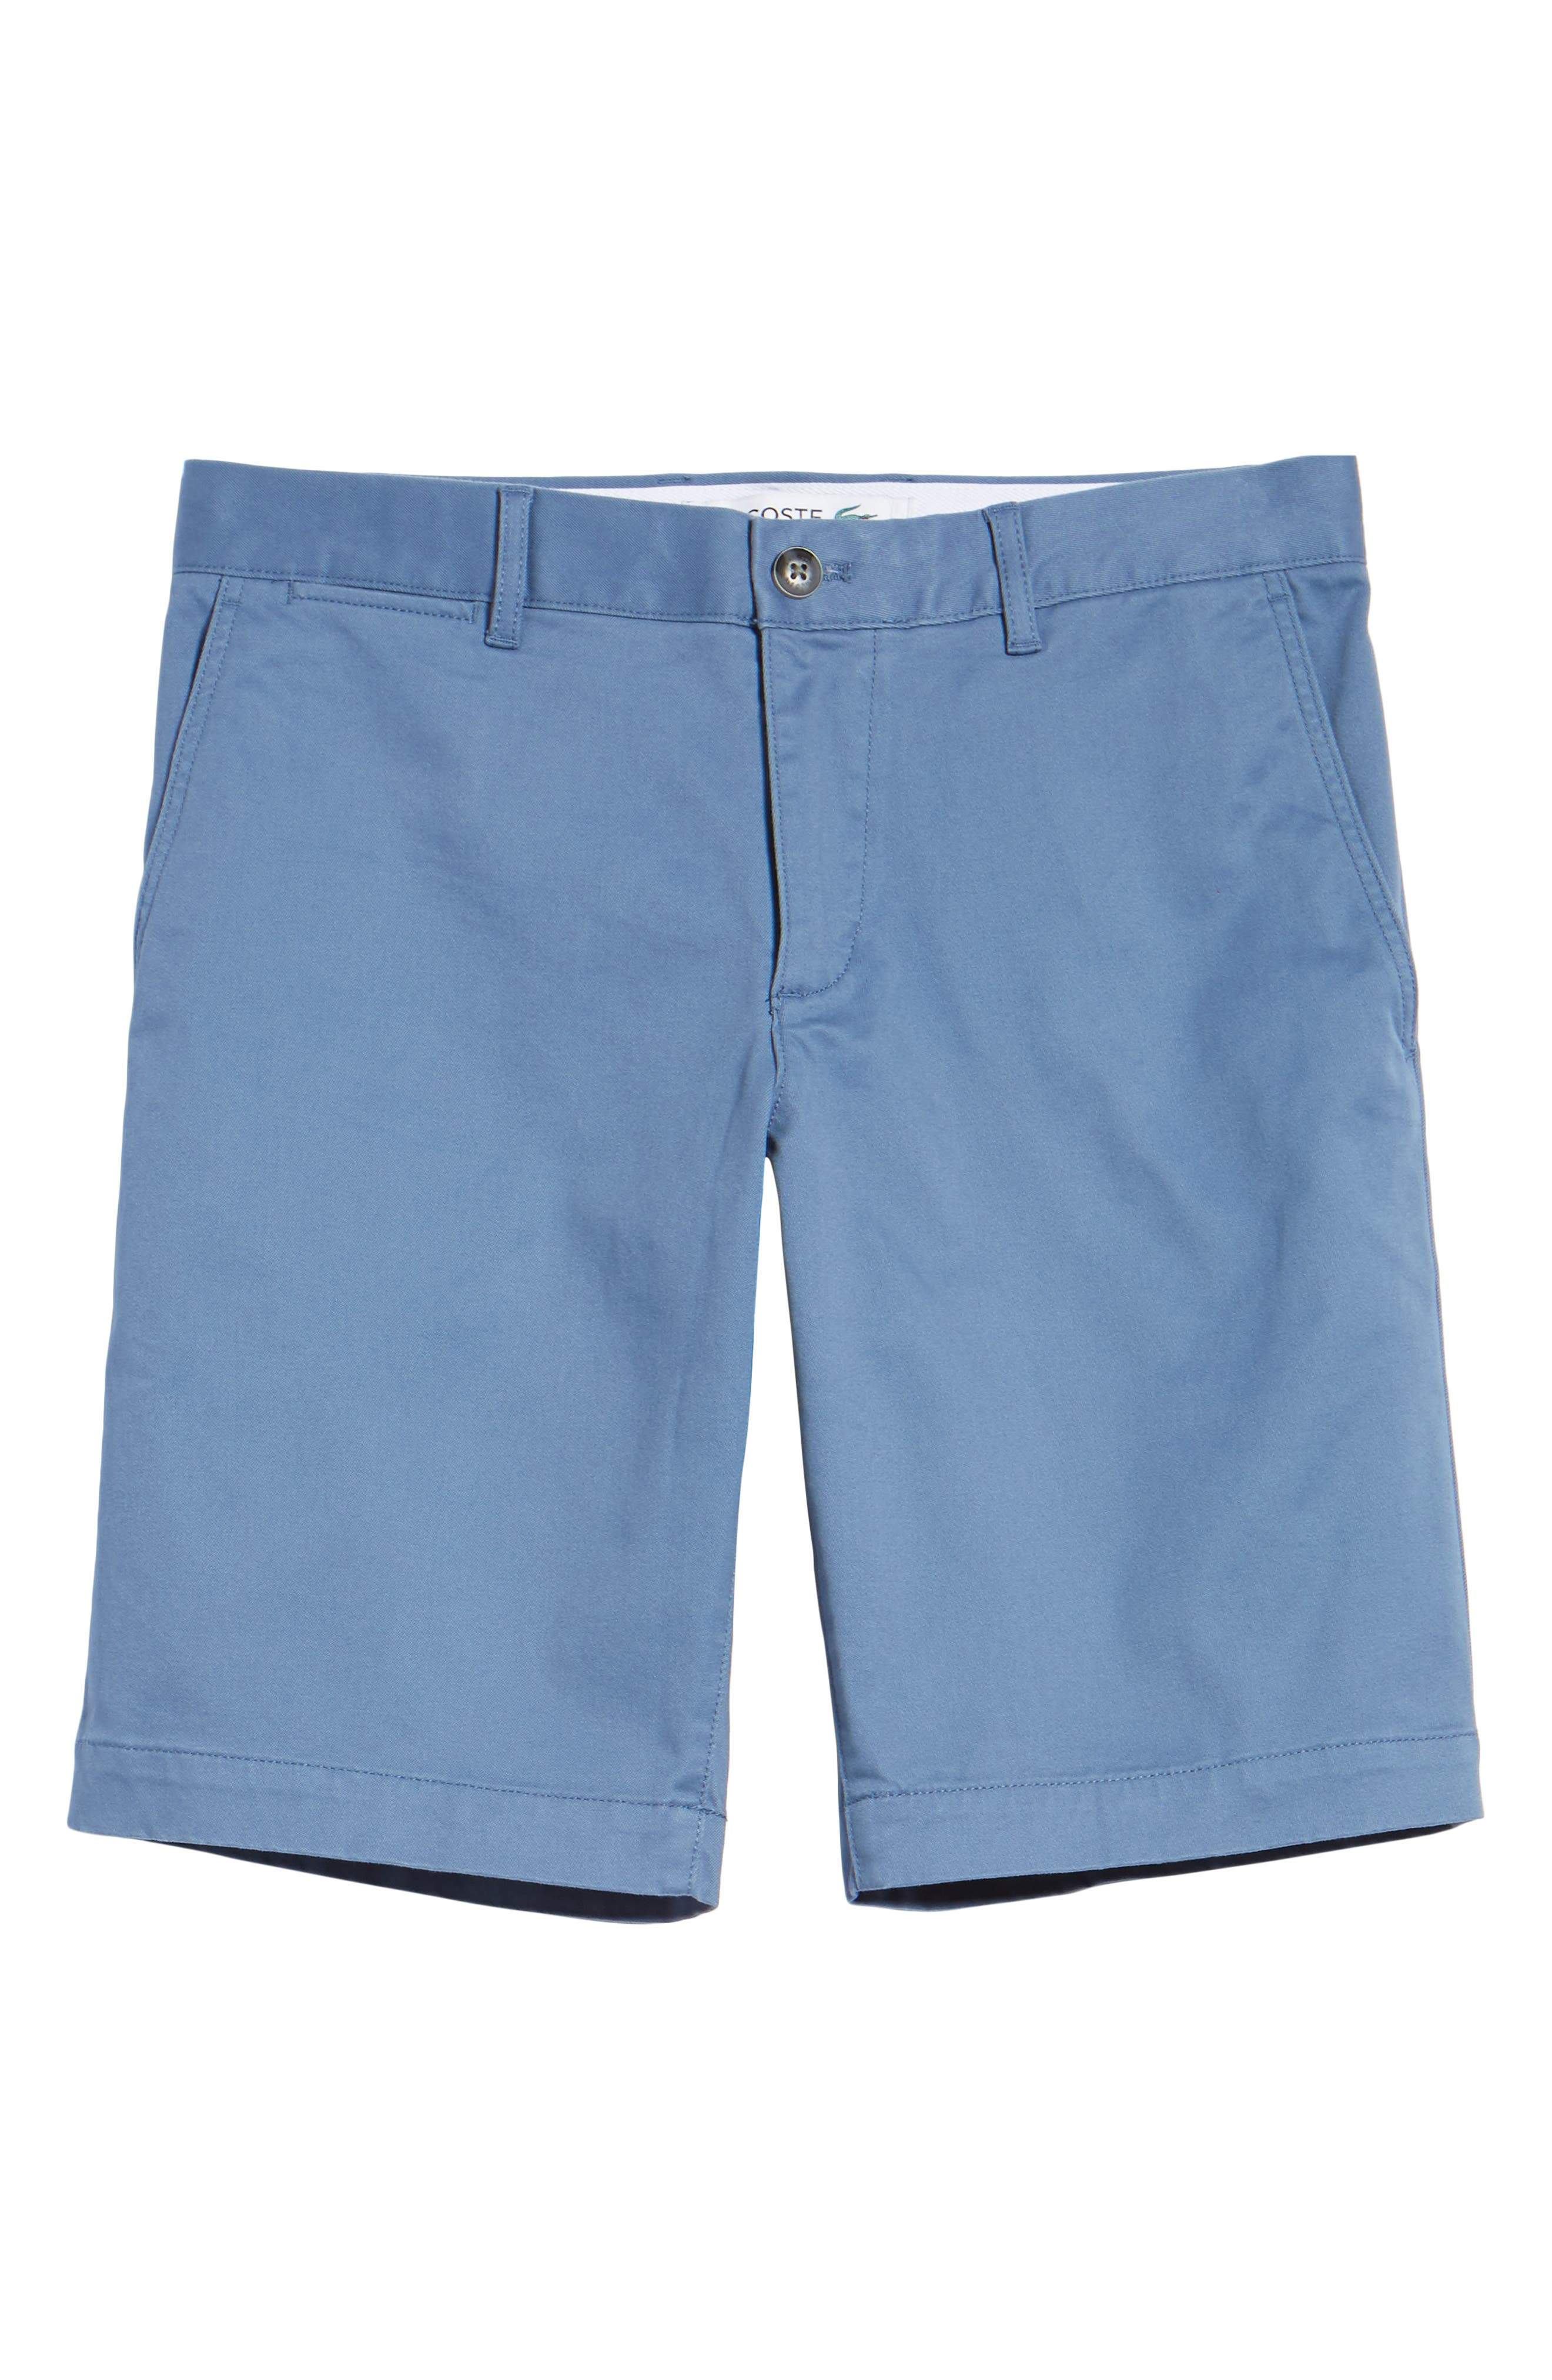 Slim Fit Chino Shorts,                             Alternate thumbnail 6, color,                             King